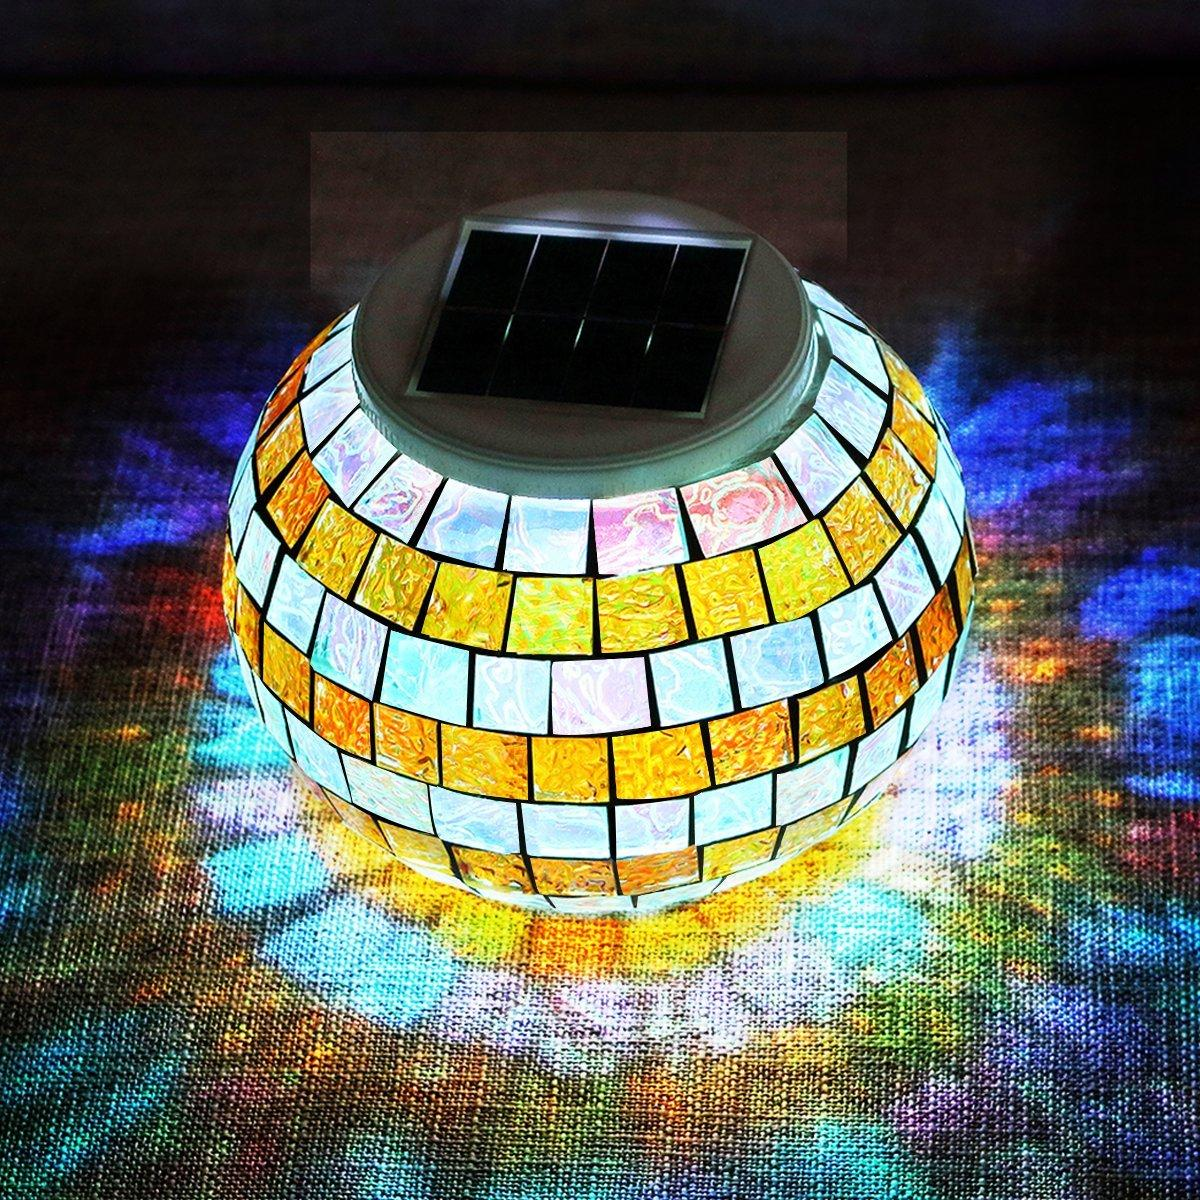 Led Color Changing Solar Table Lights Mosaic Glass Ball Outdoor Garden Night